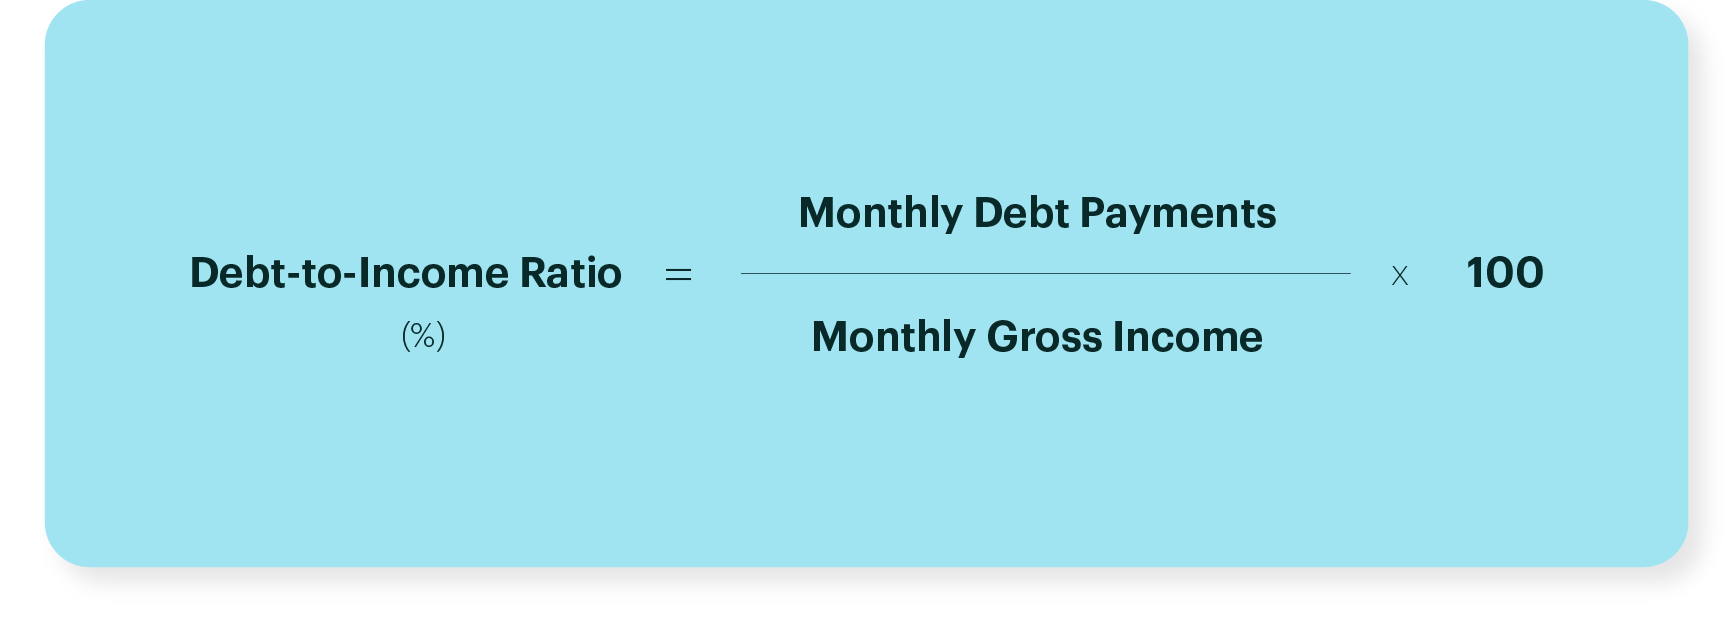 Debt to Income Ratio = Monthly Debt Payments / Monthly Gross Income x 100